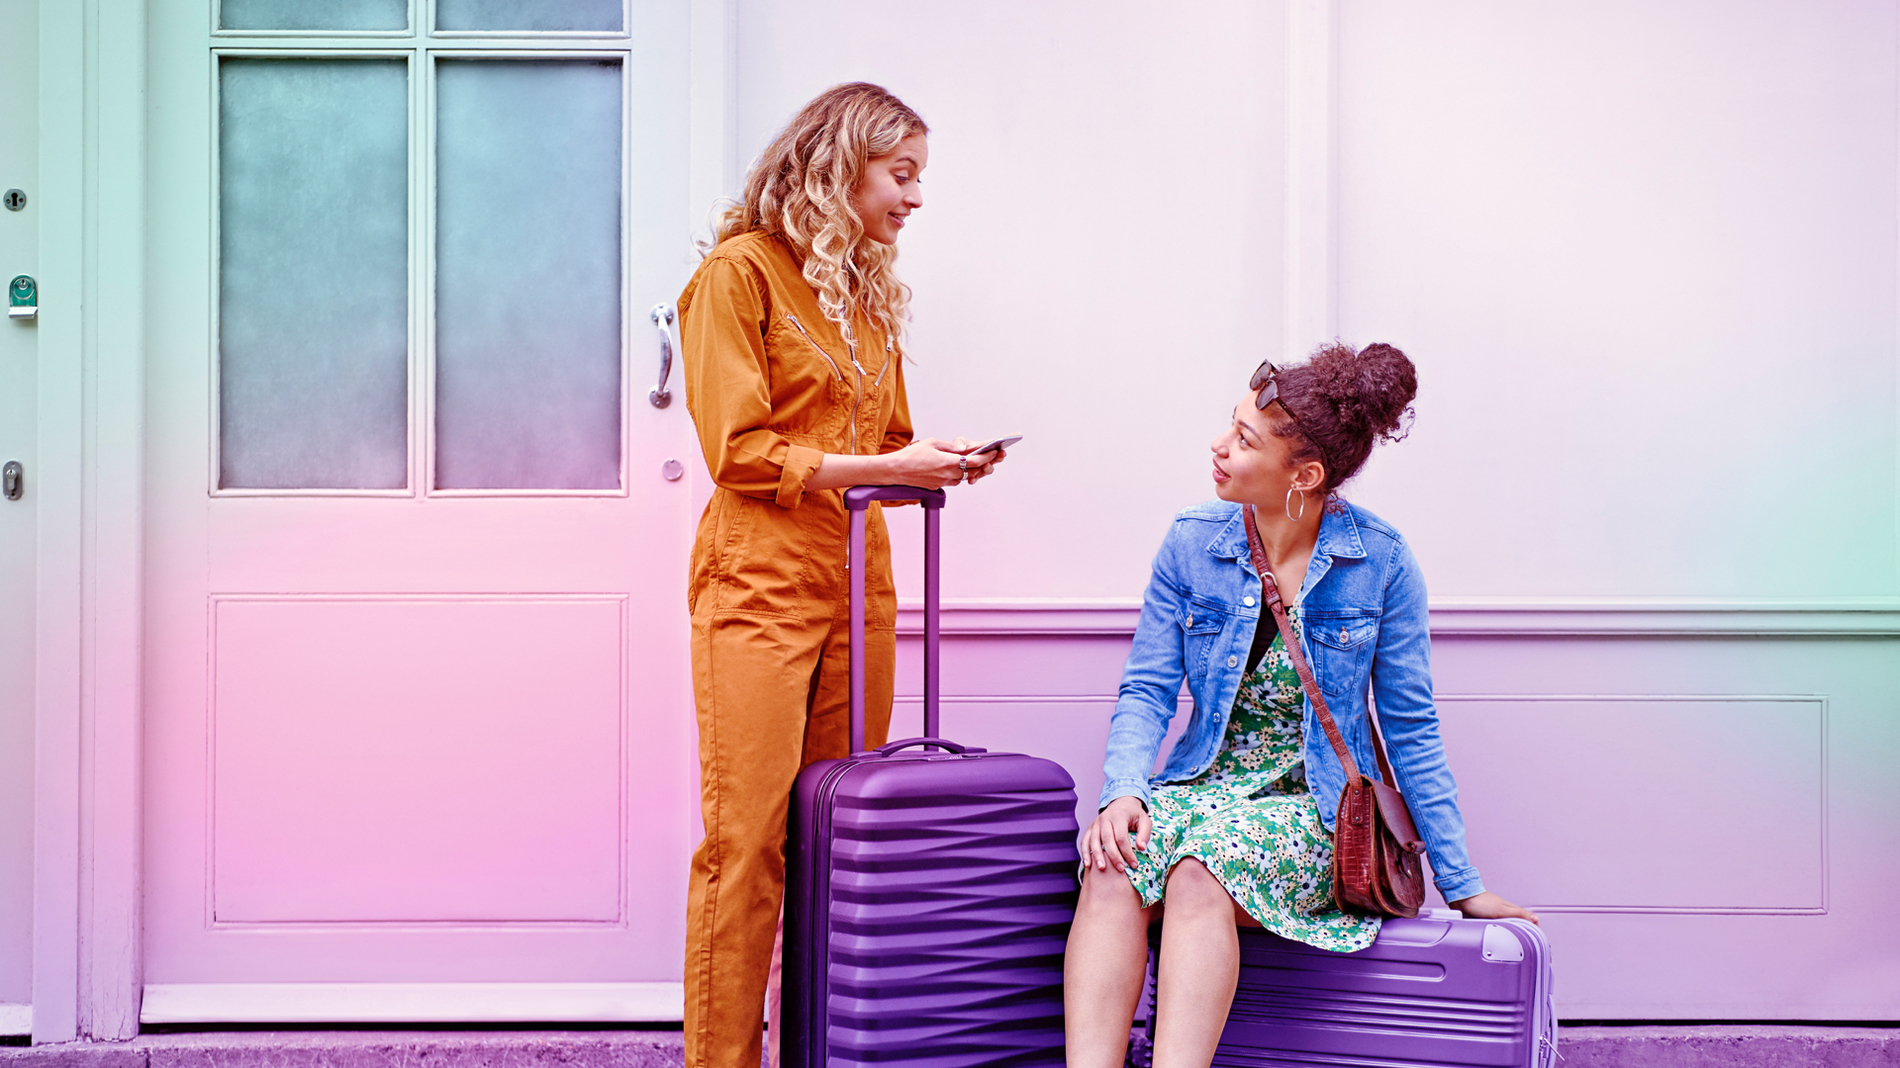 One woman sits on top of a suitcase and another woman leans on the extended handle of another suitcase while she uses her Three Mobile network on her phone.